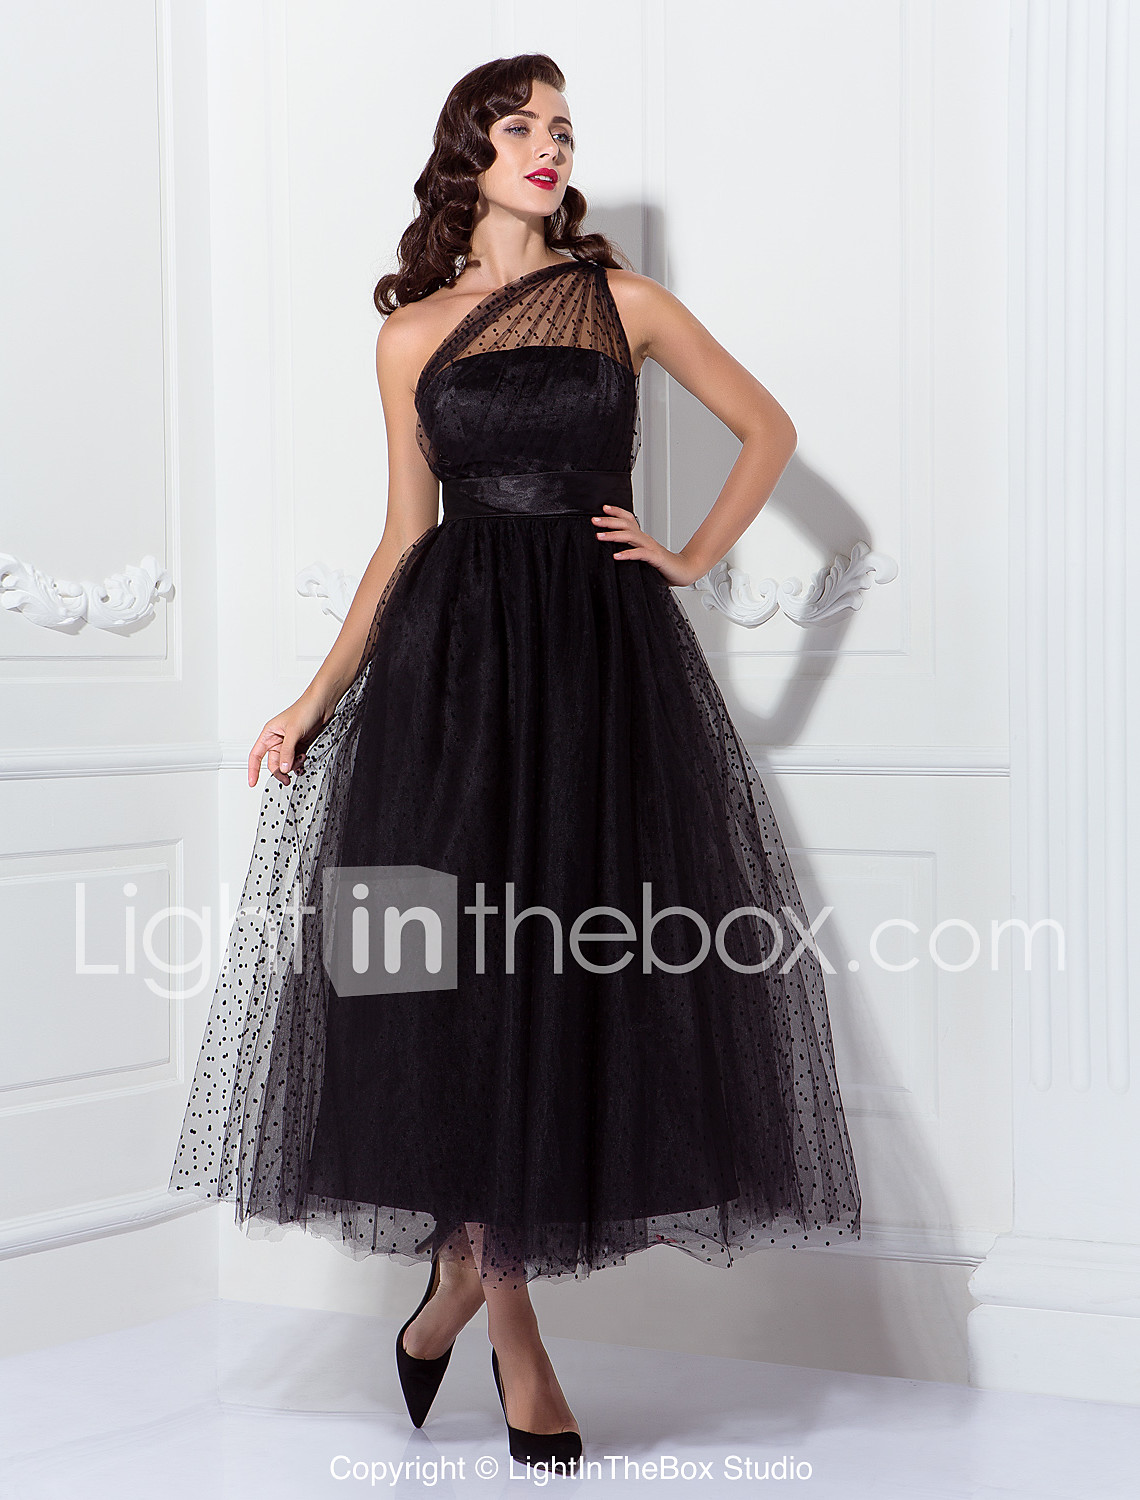 plus size wedding party dresses TS Couture Prom Formal Evening Wedding Party Dress Celebrity Style Vintage Inspired s A